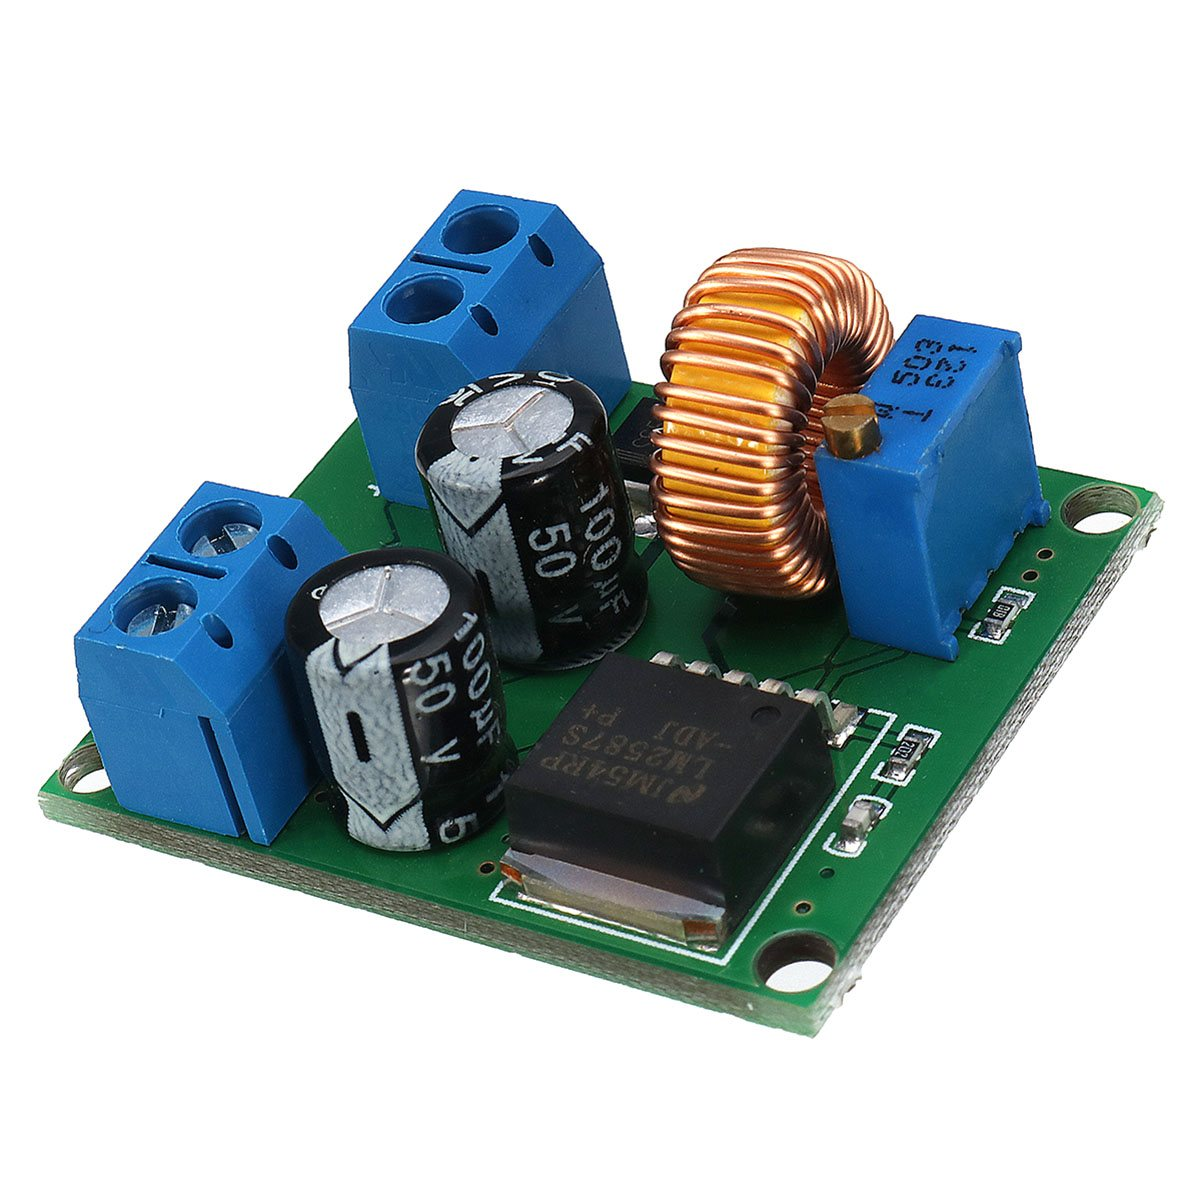 все цены на DC-DC 3V-35V To 4V-40V Adjustable Step Up Power Module 3V 5V 12V To 19V 24V 30V 36V High Power Boost Inverters Converter онлайн